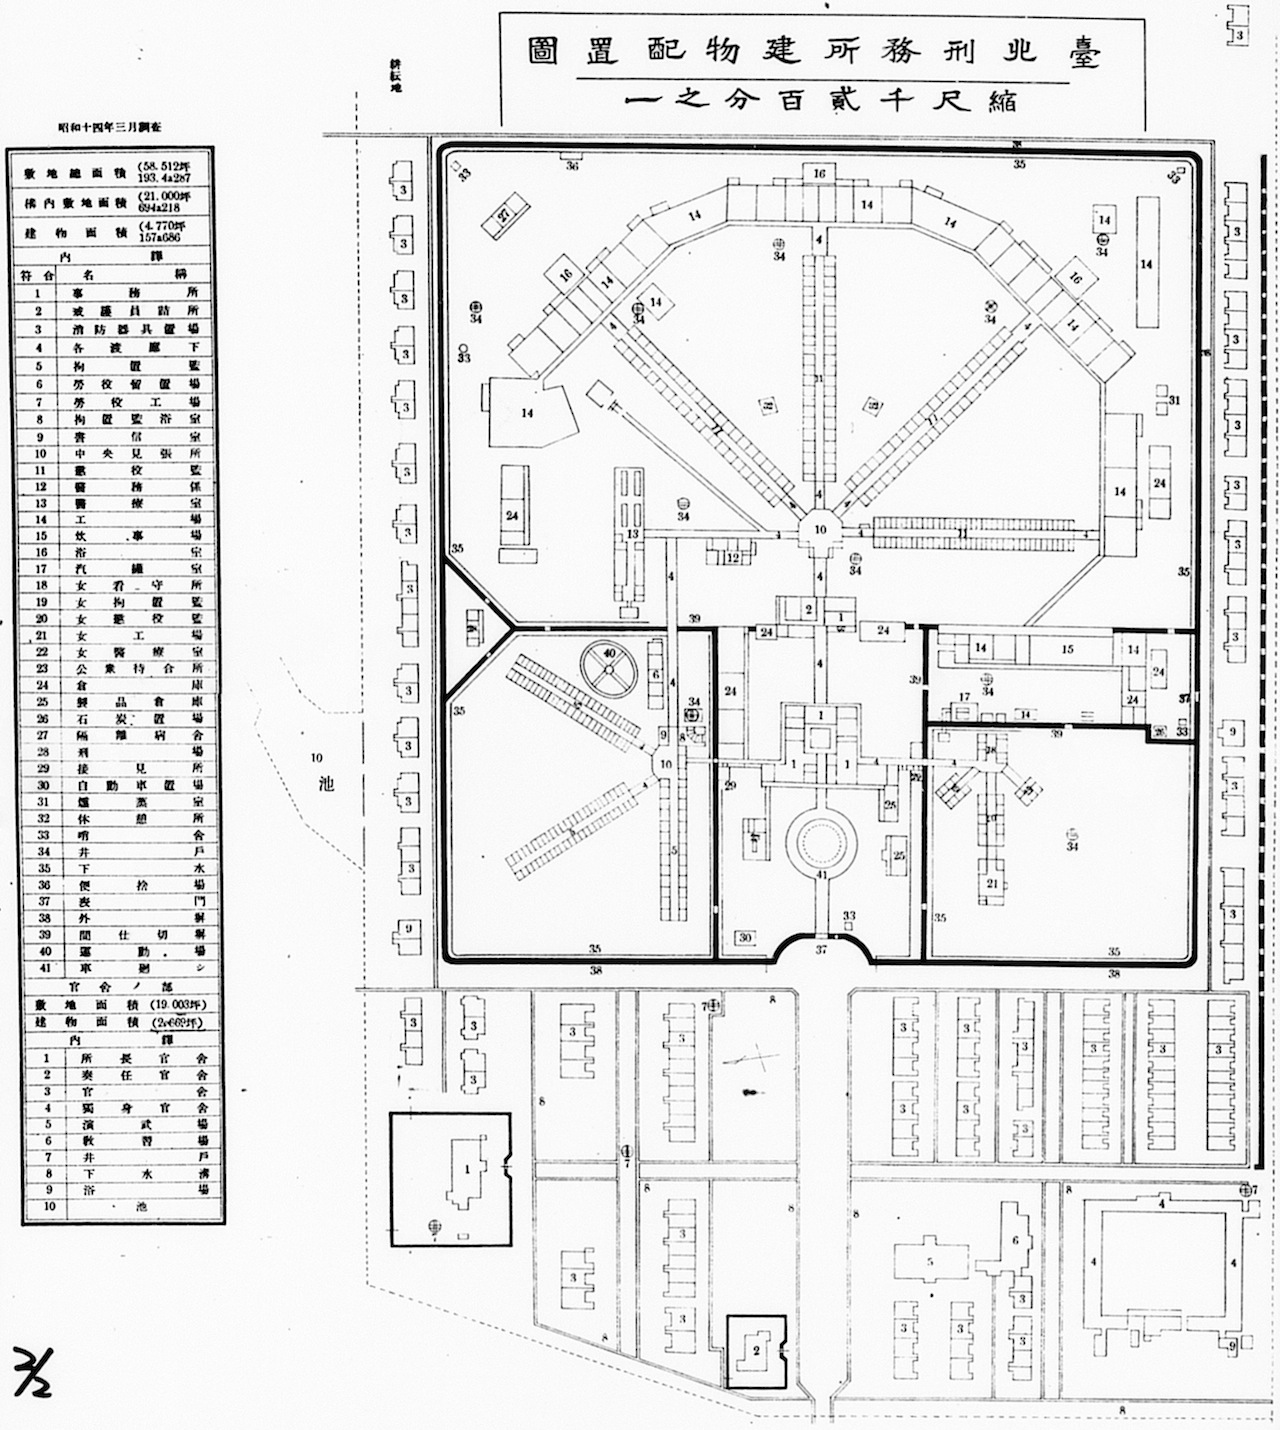 Hex House Is A Rapidly Deployable Affordable Home For Disaster Victims additionally Single Plate Clutch 2d Drawings likewise 30720 moreover 2 Storey D additionally File Taihoku prison plan. on simple housing